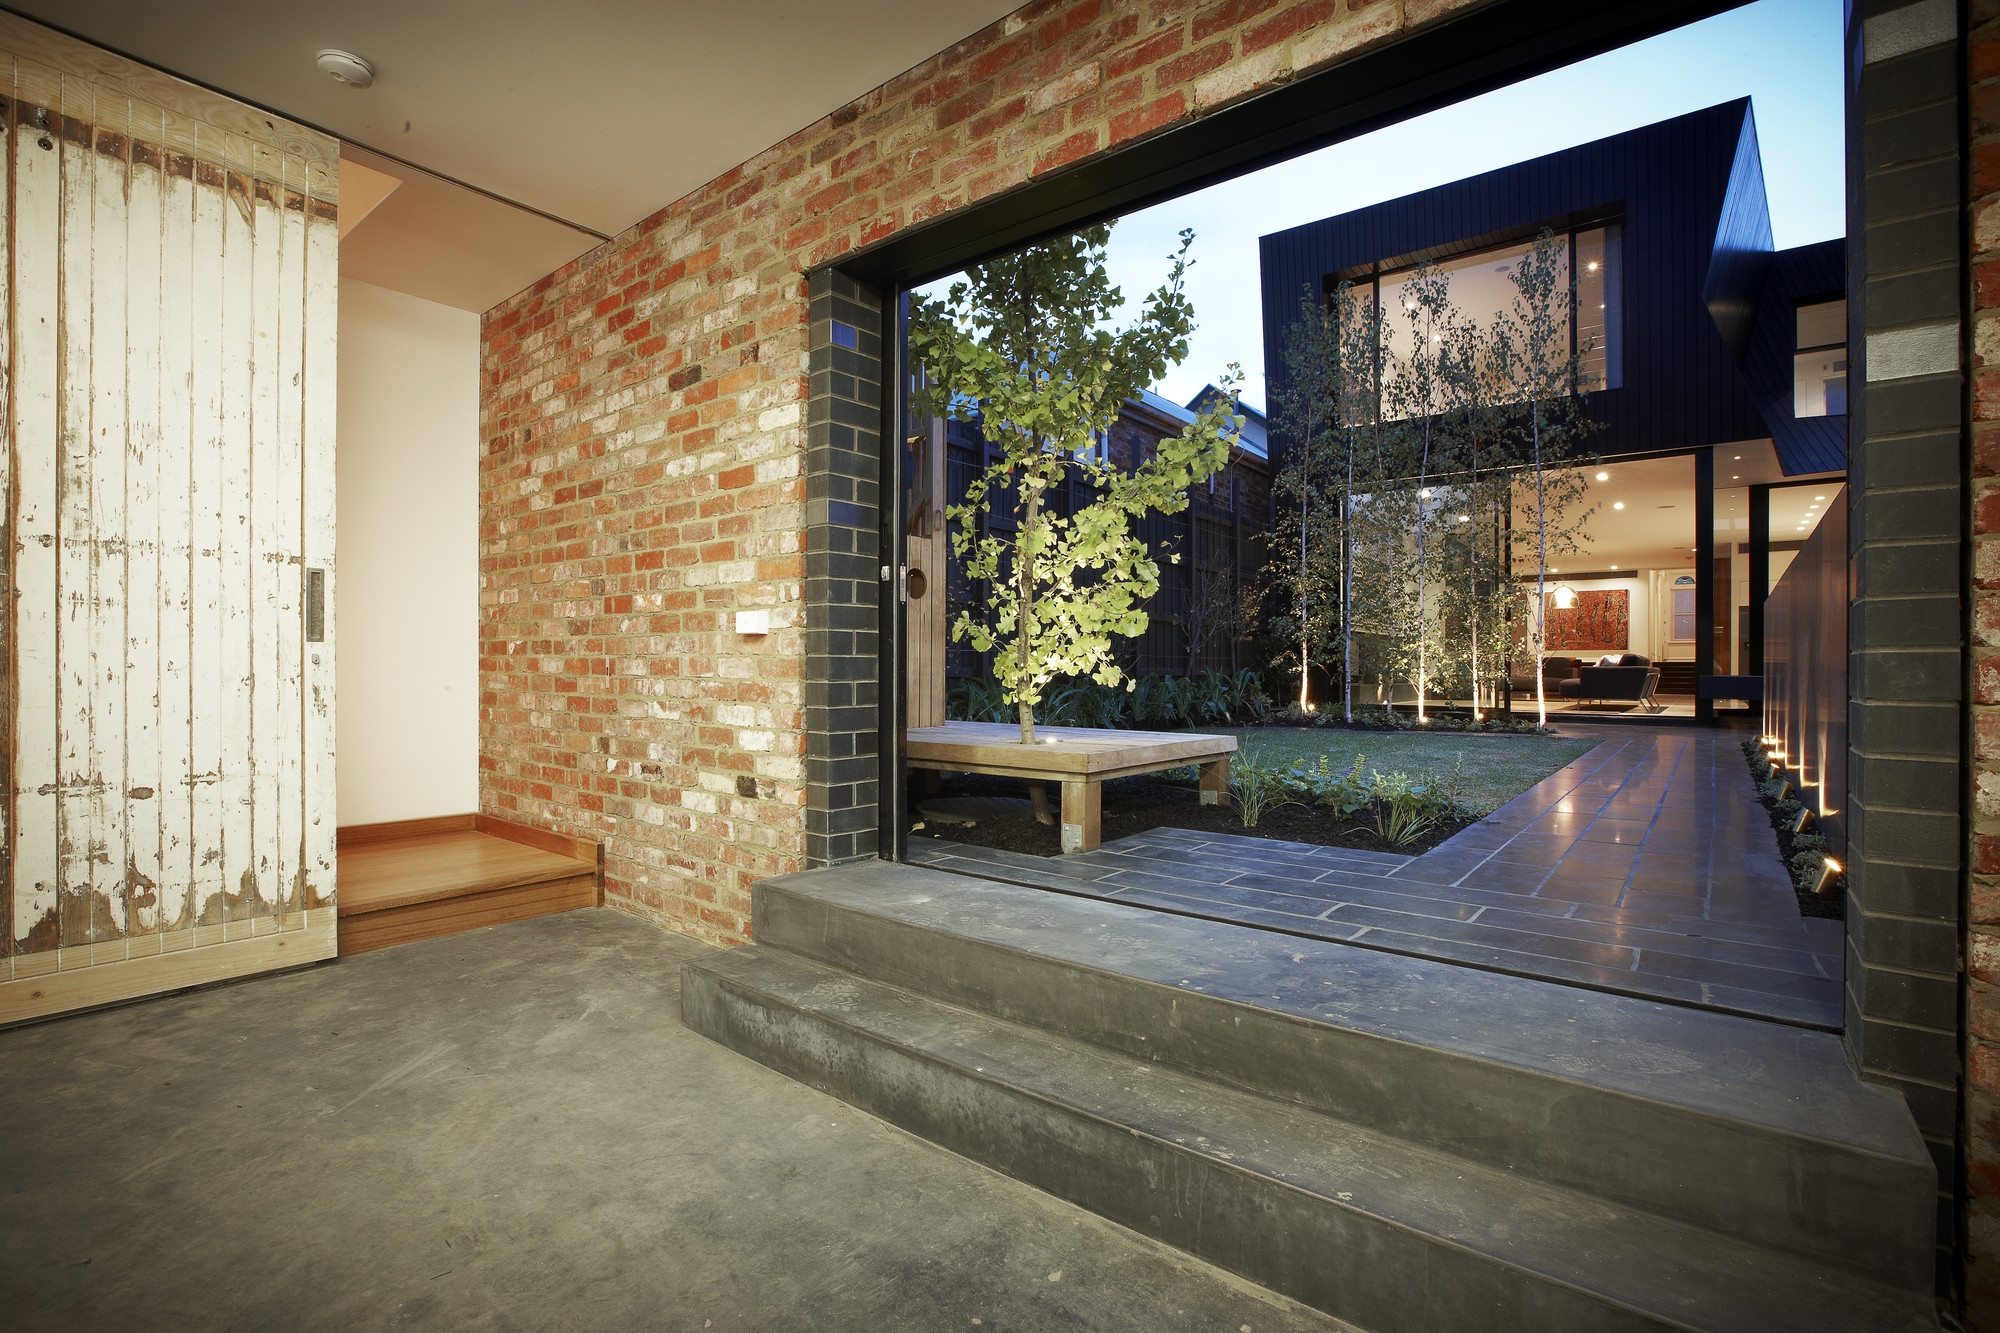 Gallery of enclave house bkk architects 4 for Courtyard designs melbourne